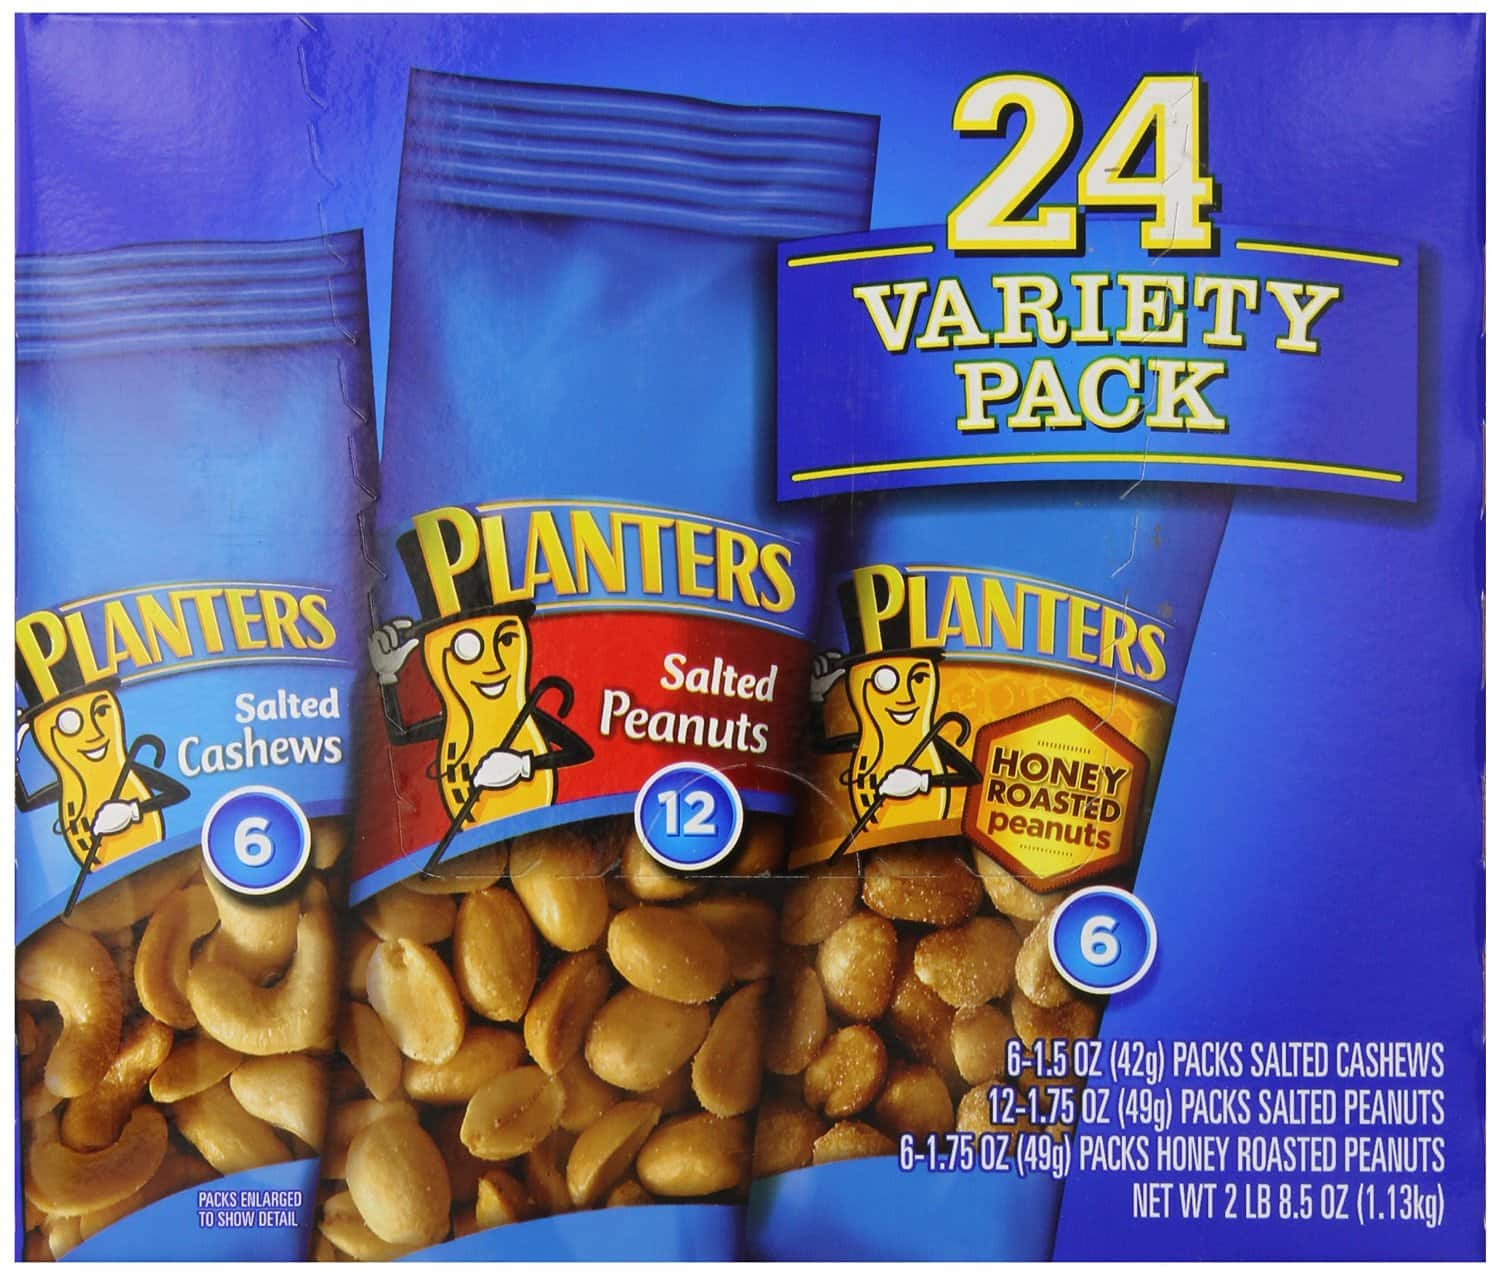 Amazon.com has Planters Nut 24 Count-Variety Pack, 2 Lb 8.5 Ounce for $6.98 With S&S + Free Shipping!